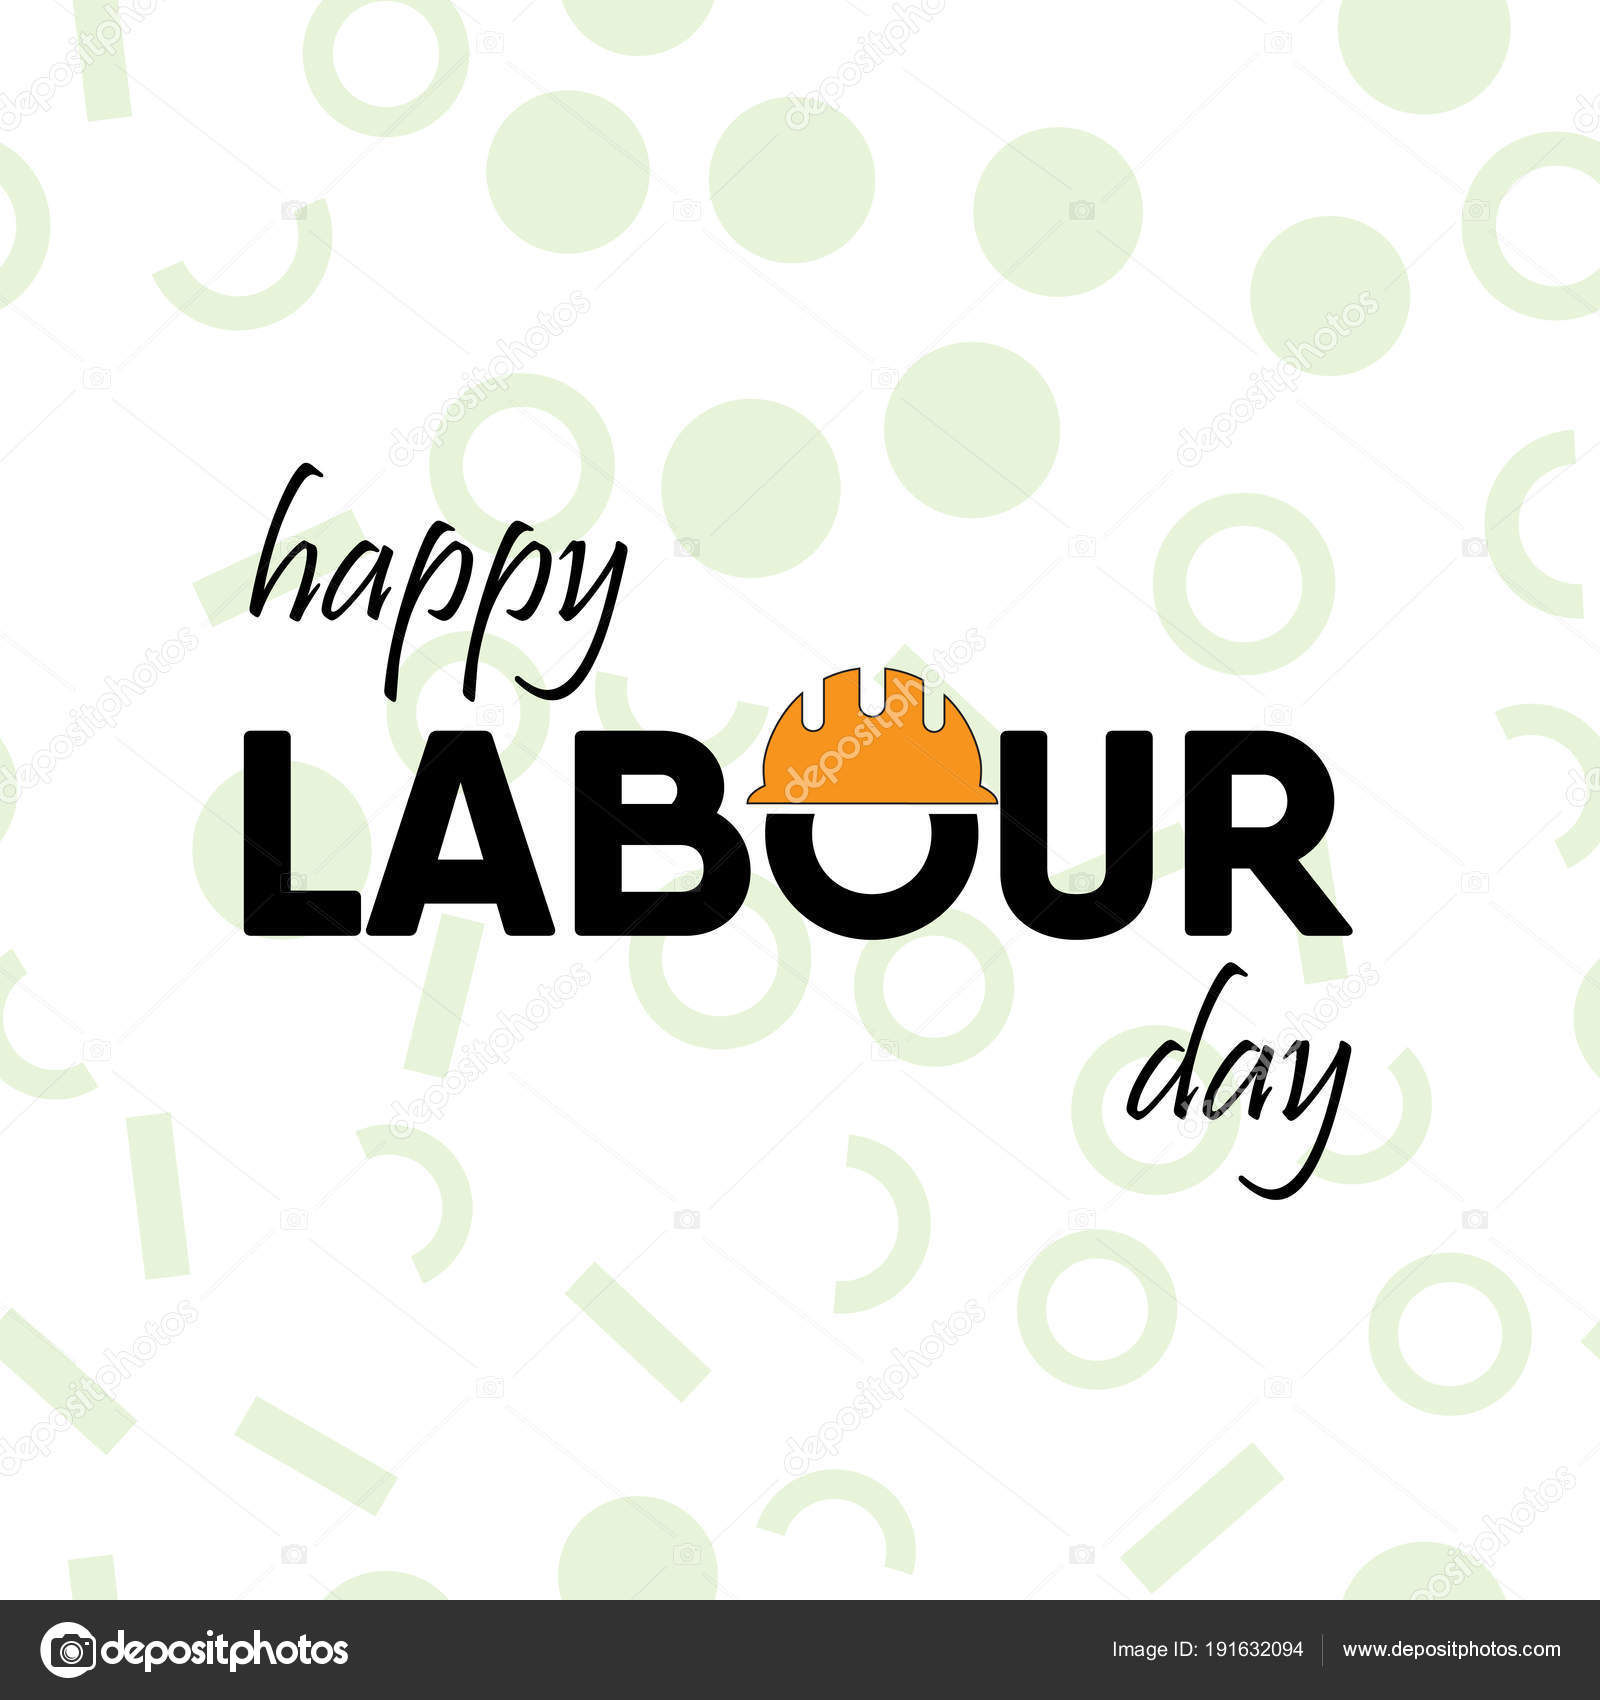 Happy labour day greeting card vector illustration stock vector happy labour day greeting card vector illustration stock vector m4hsunfo